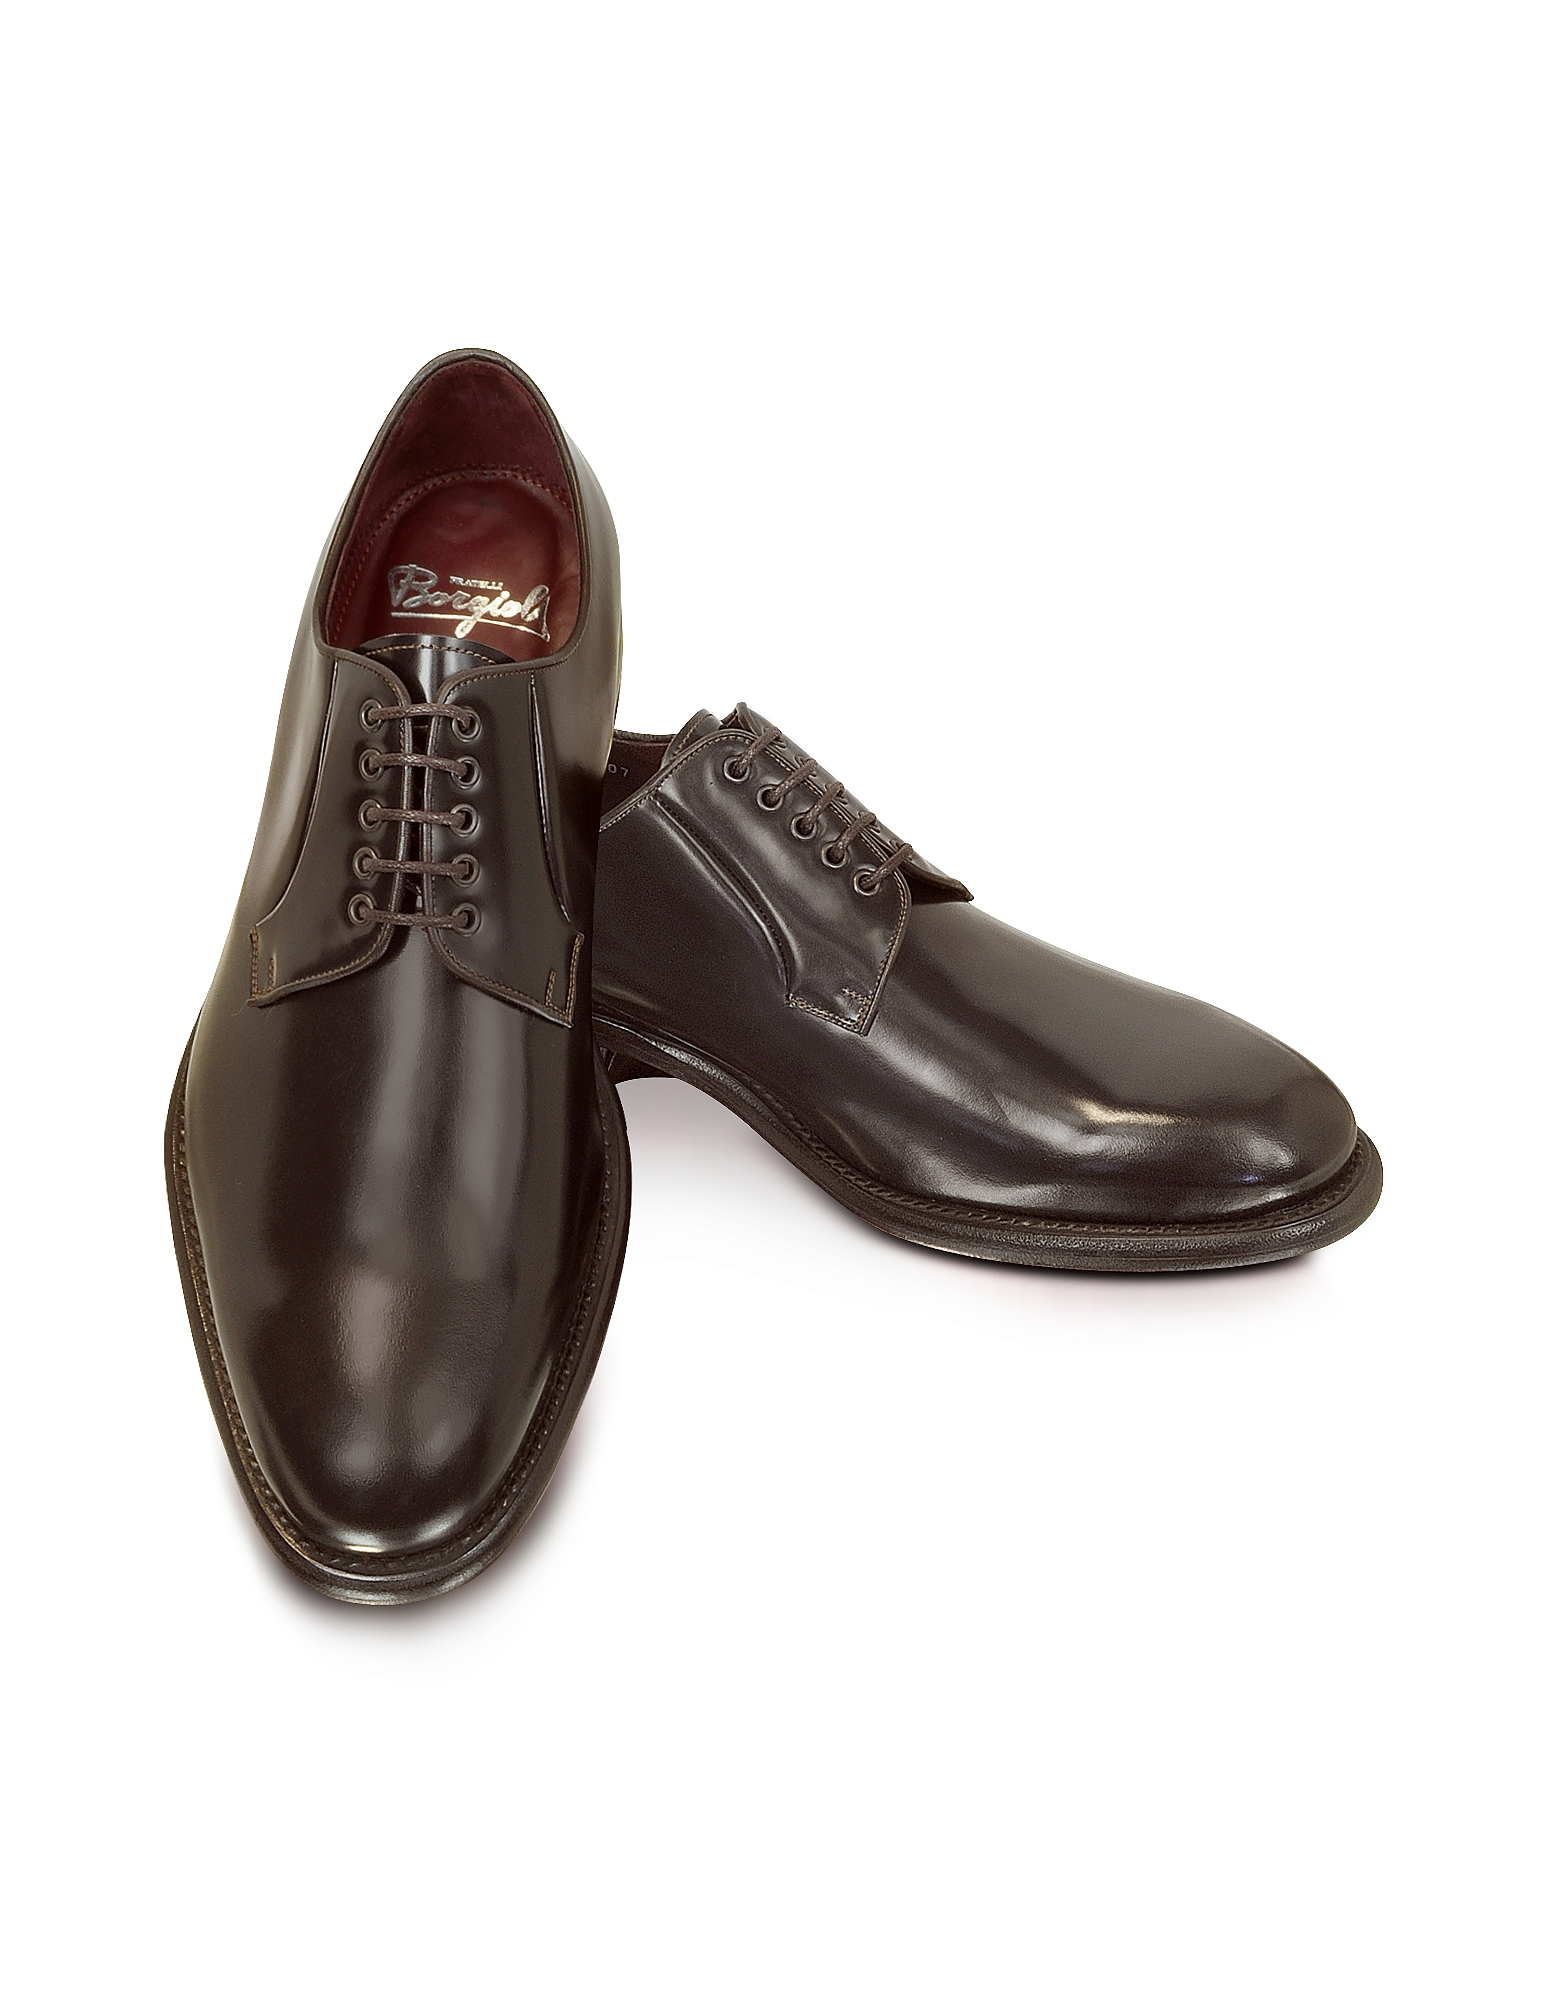 Fratelli Borgioli Shoes, Cricket - Shiny Brown Derby